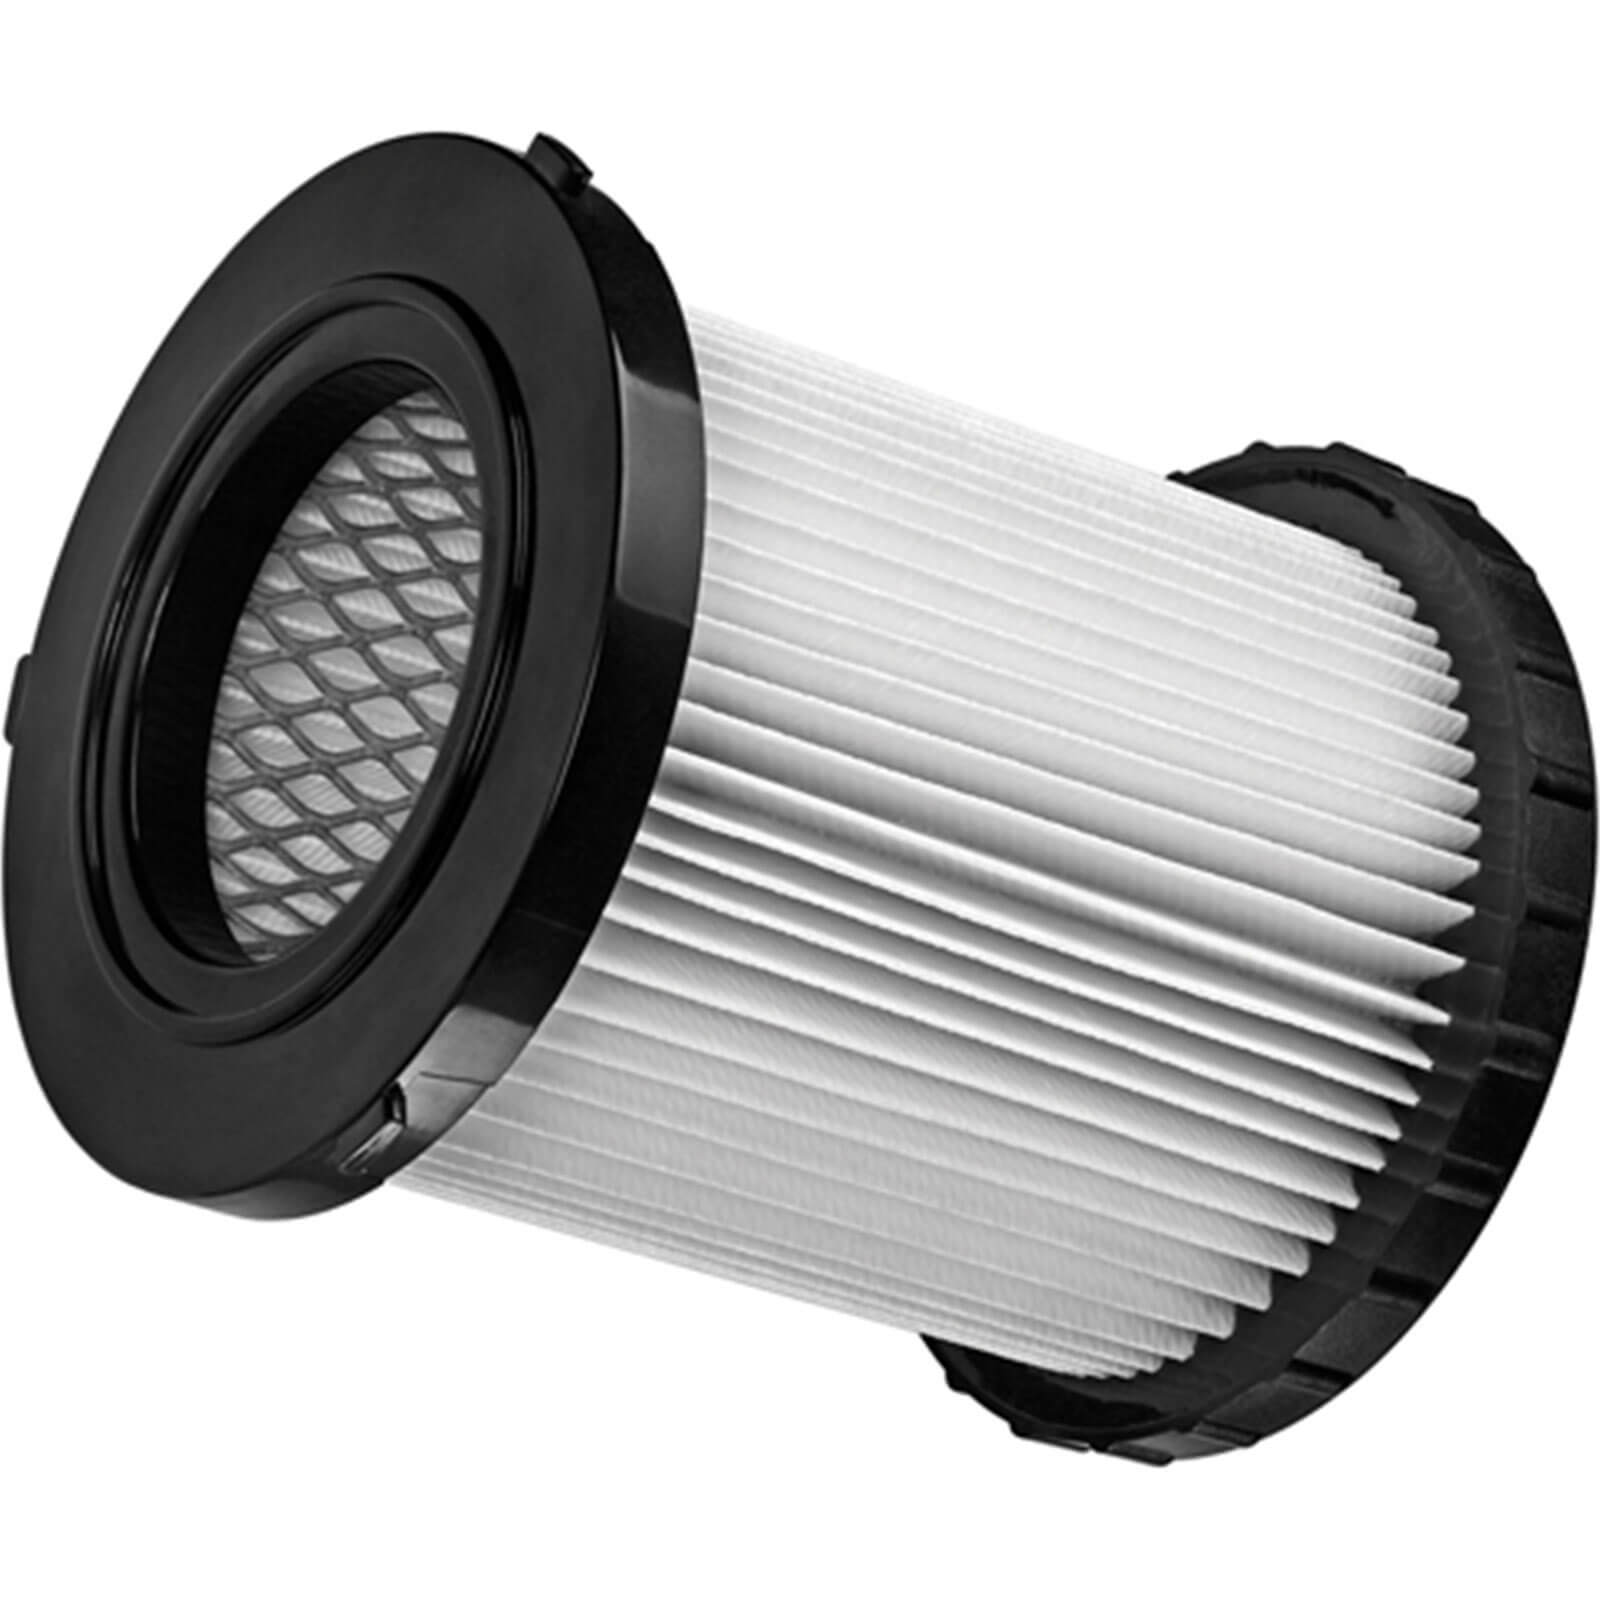 Image of DeWalt DCV5801H Replacement Filter for the DCV582 Wet & Dry Vacuum Cleaner